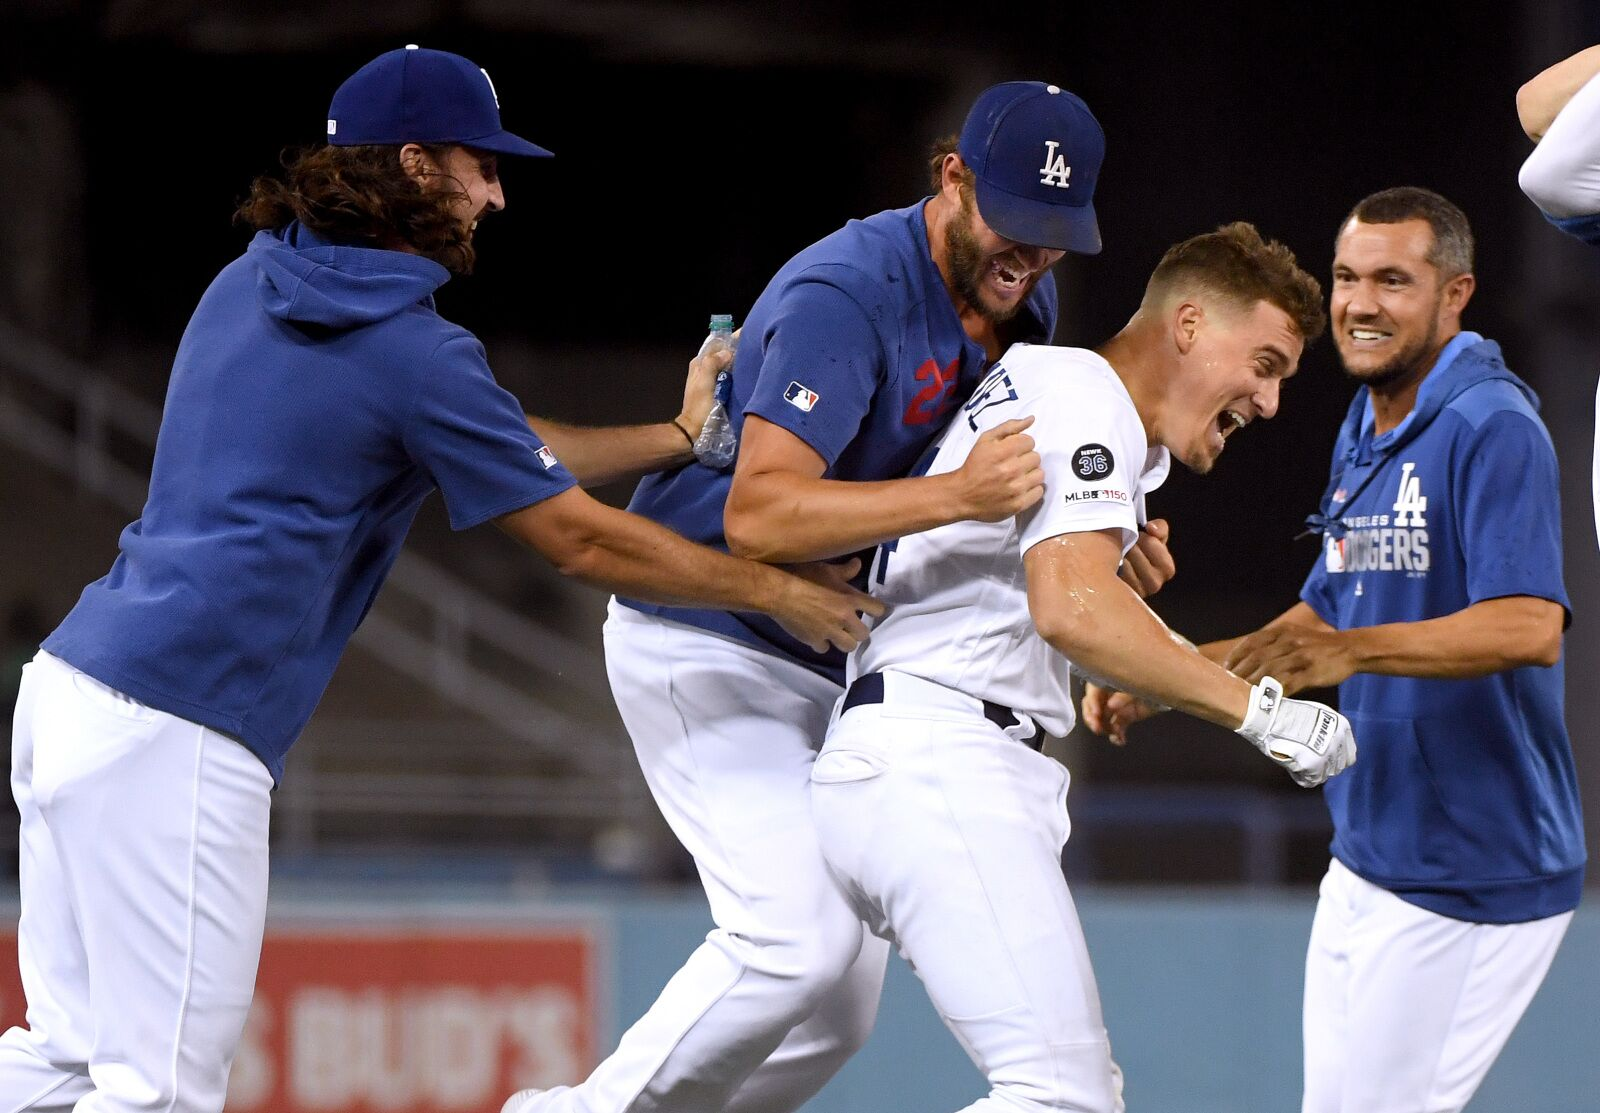 Los Angeles Dodgers: The start of the series of the year